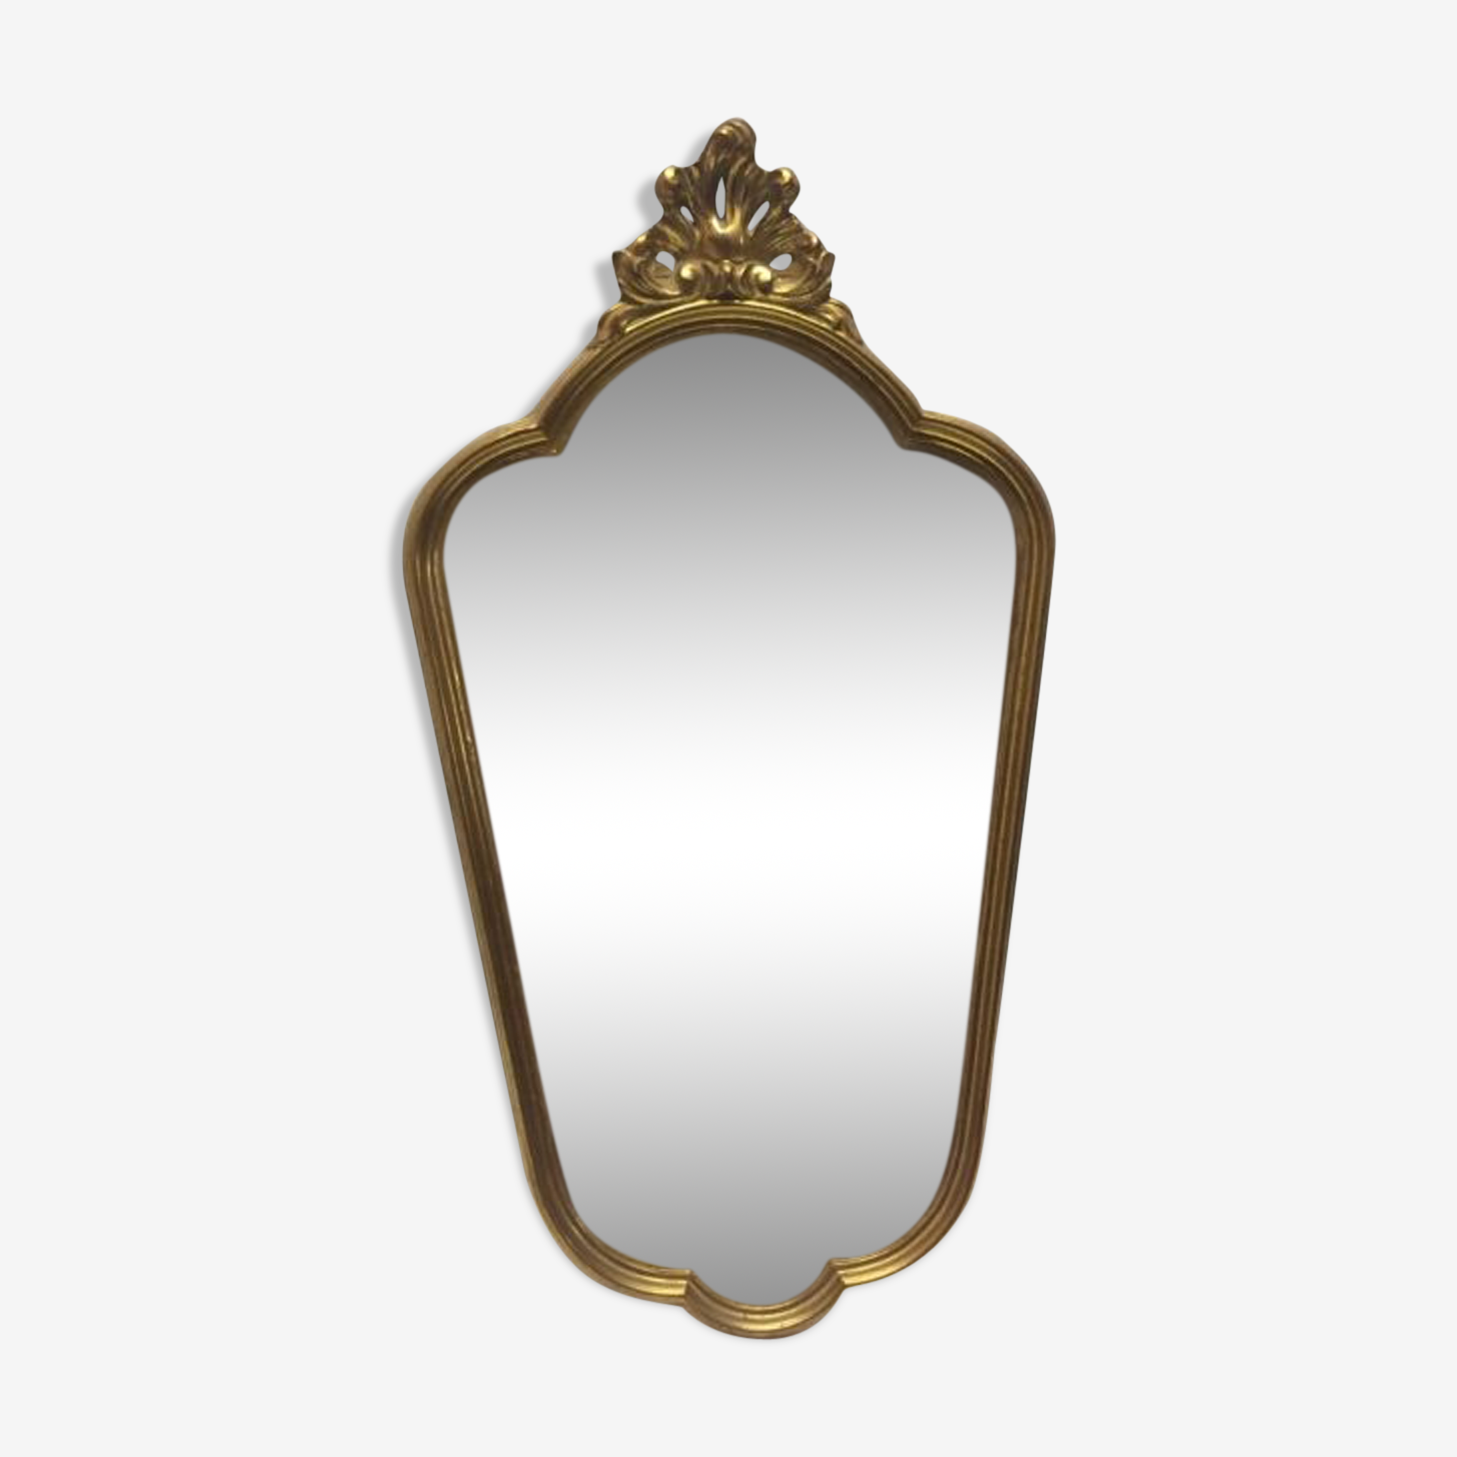 Old gold mirror